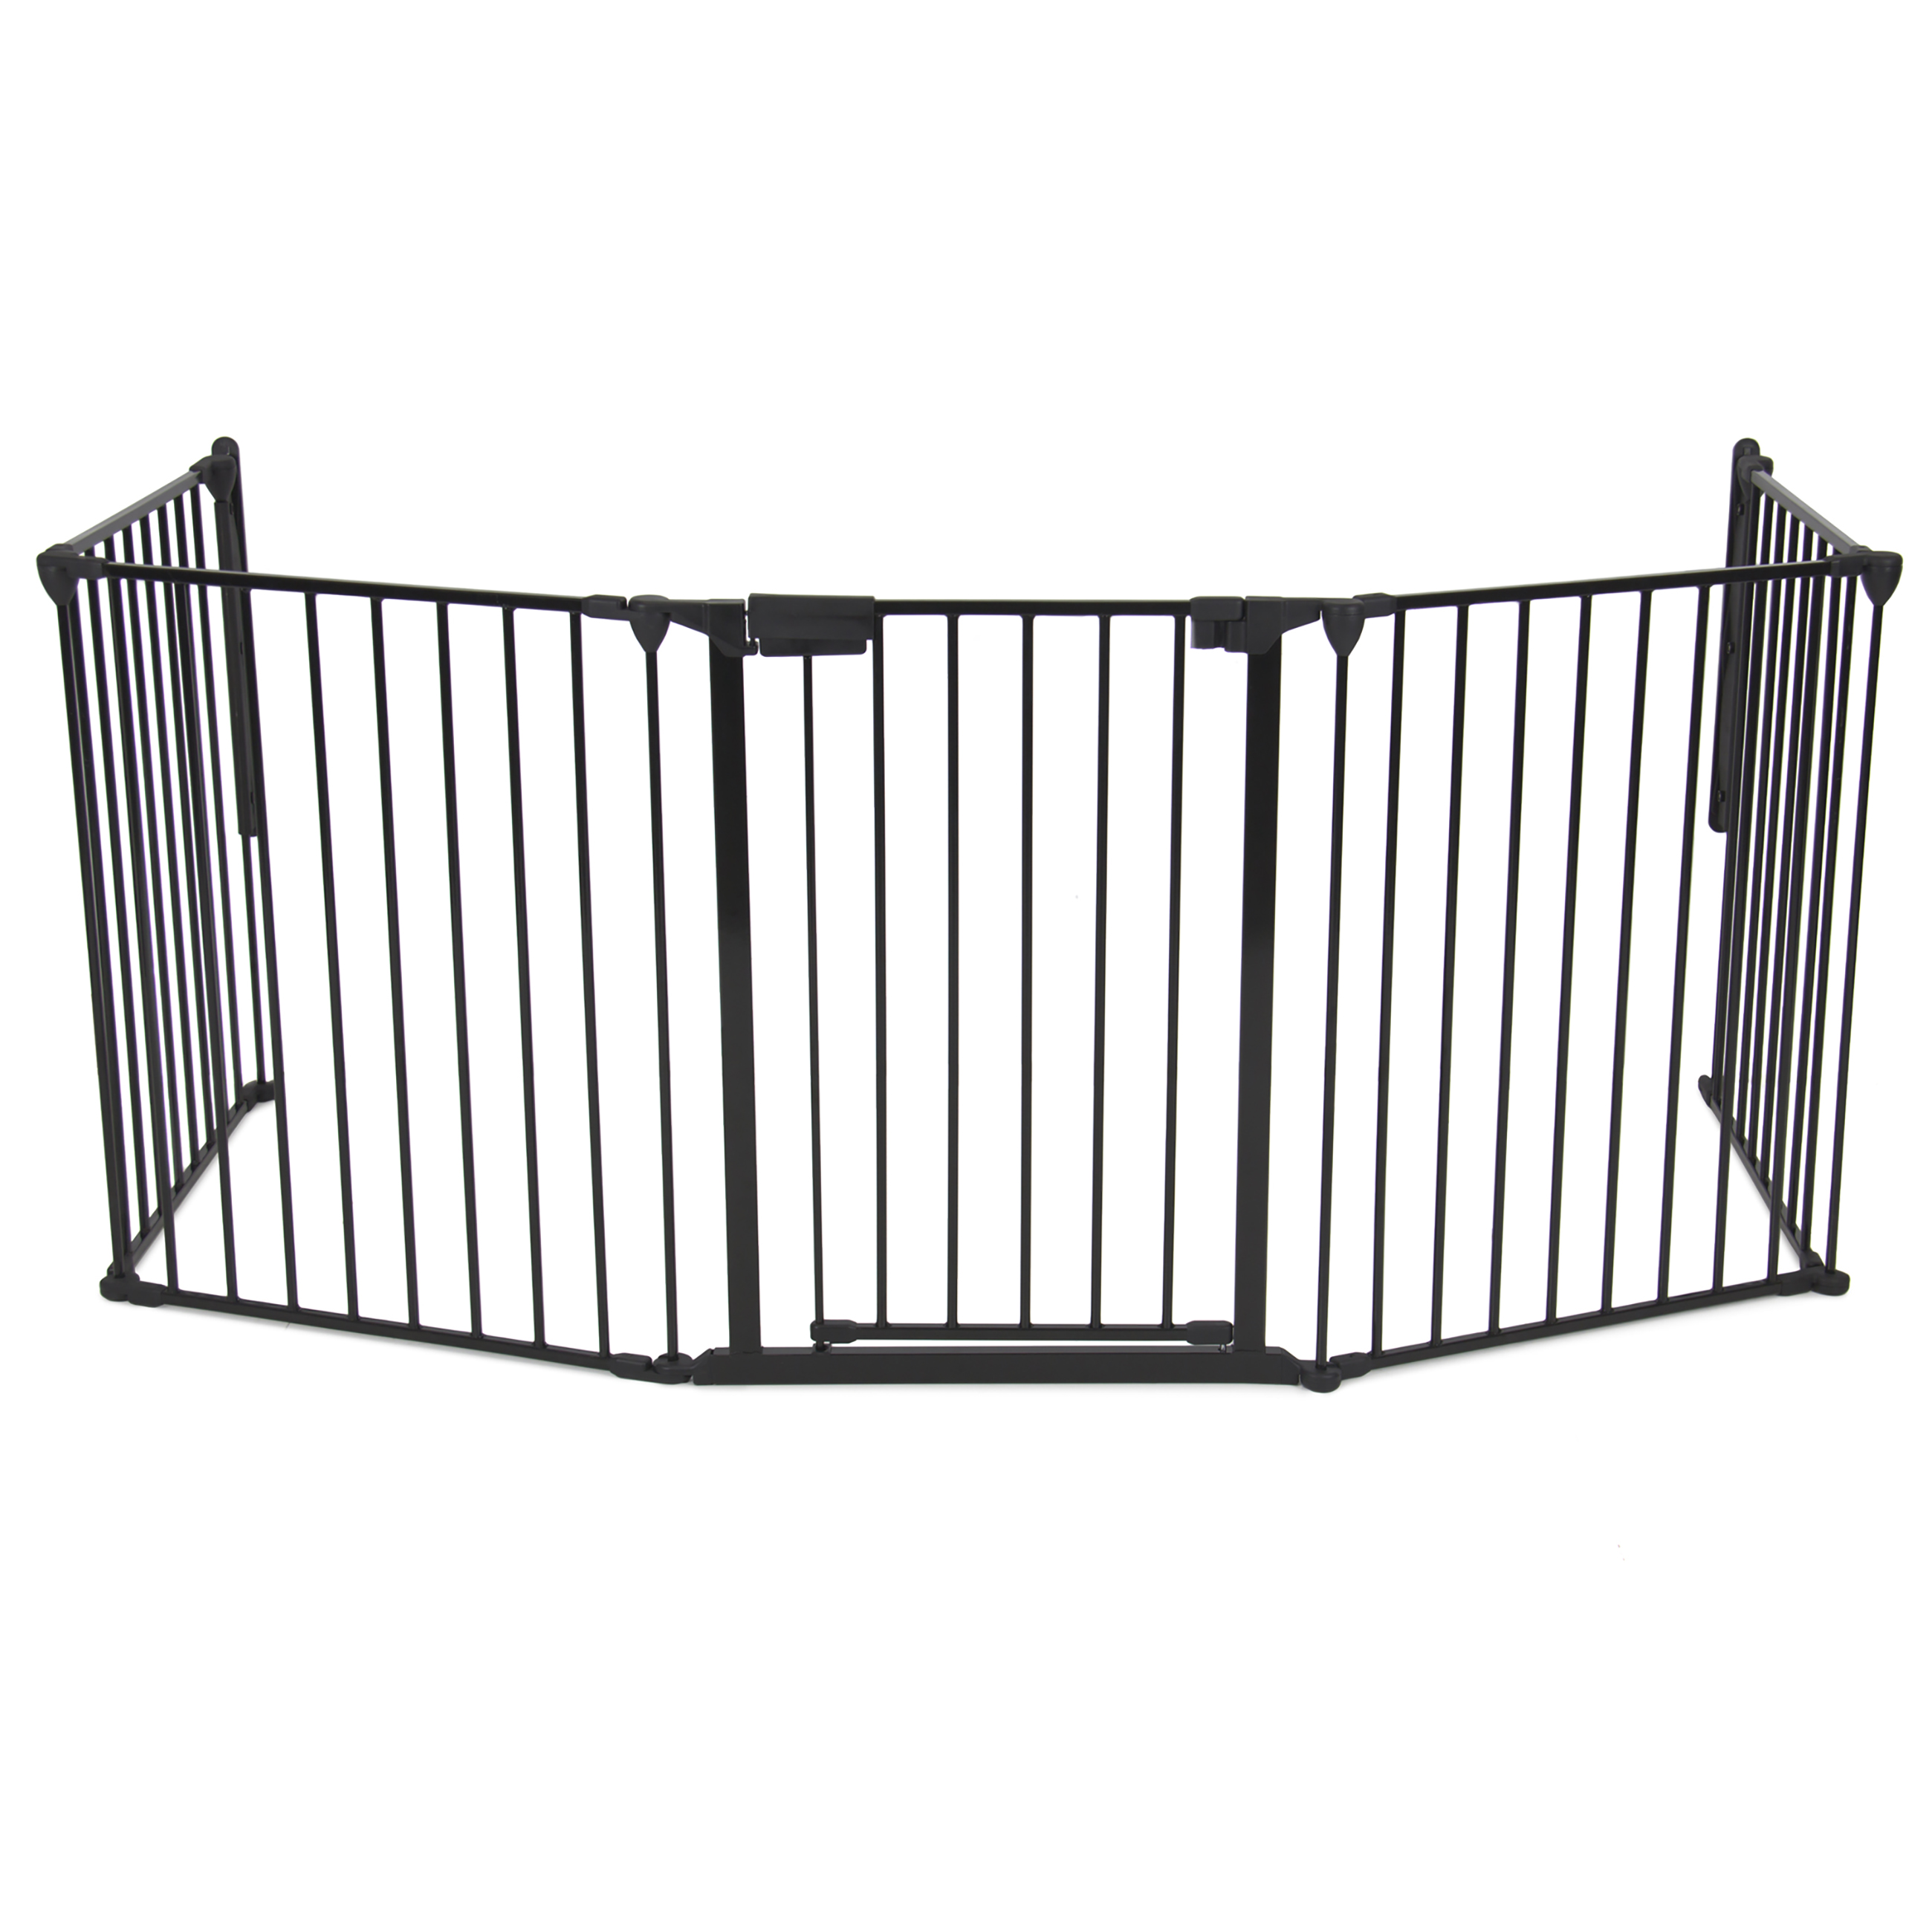 Free Shipping. Buy Best Choice Products Baby Safety Fence Hearth Gate BBQ Fire Gate Fireplace Metal Plastic at Walmart.com